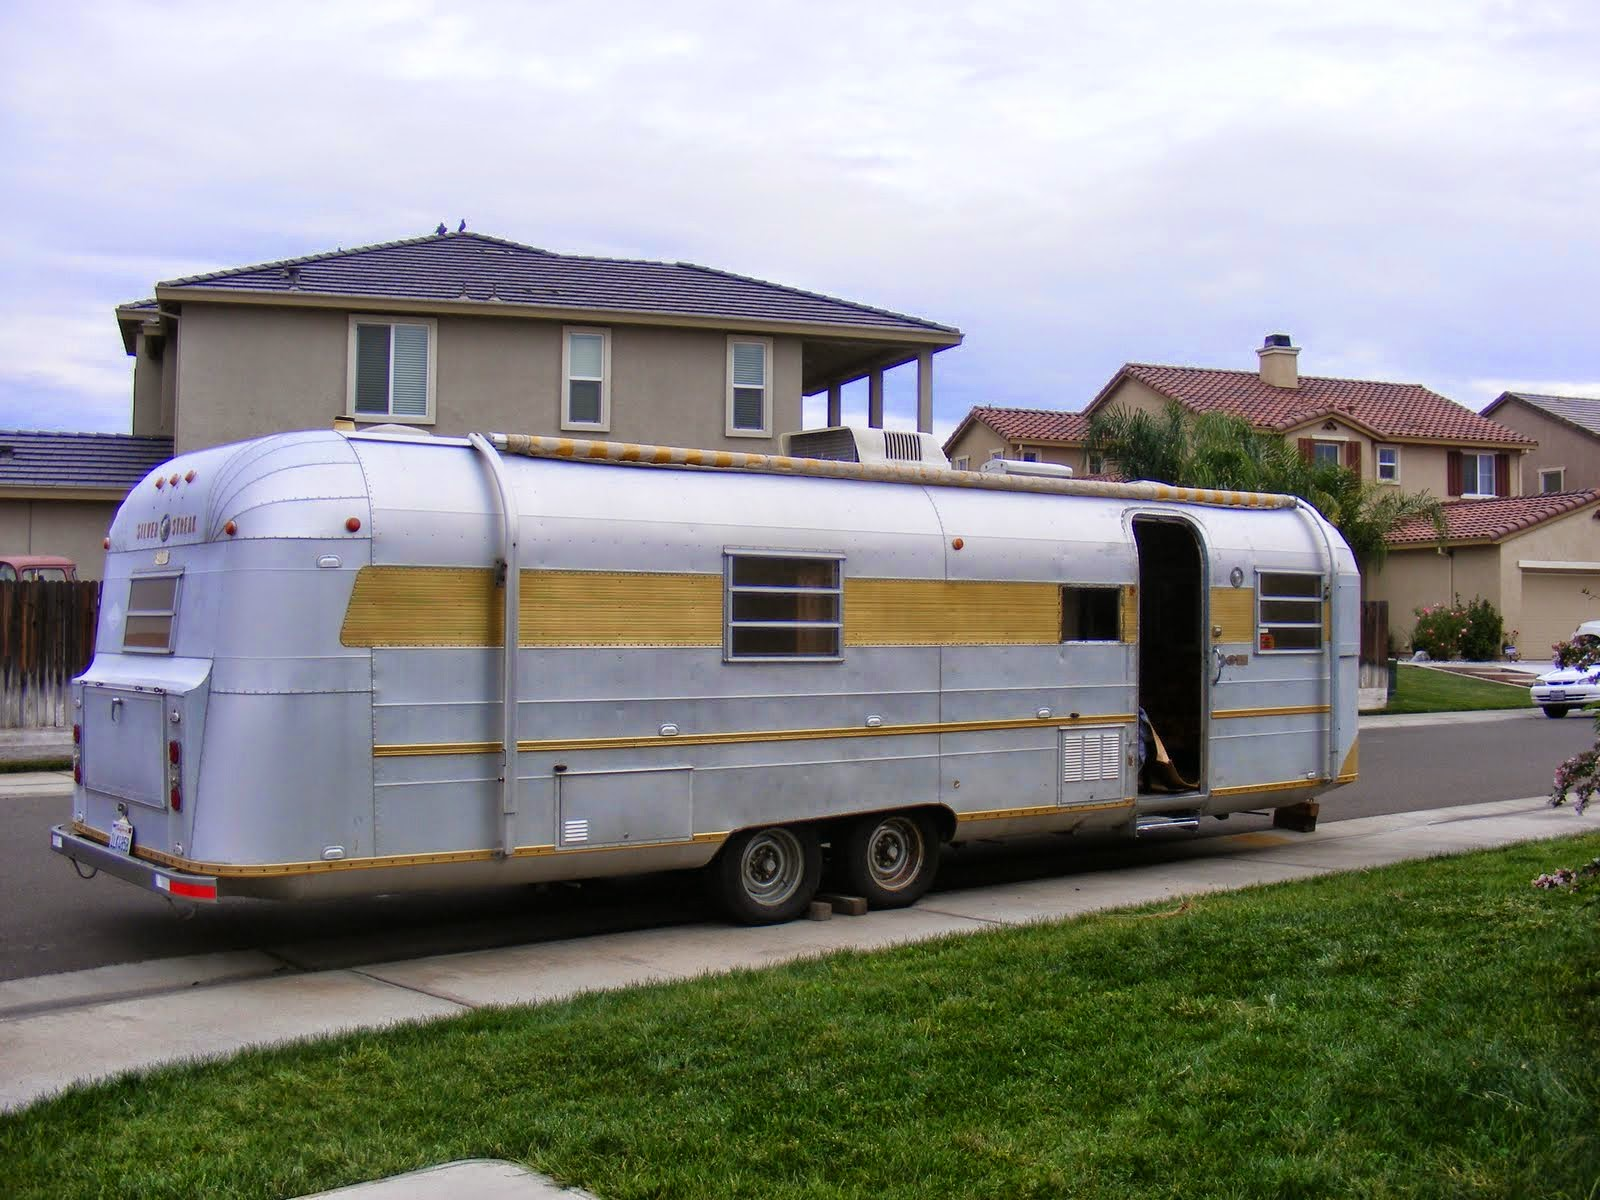 Silver Streak Seven Finding the Trailer